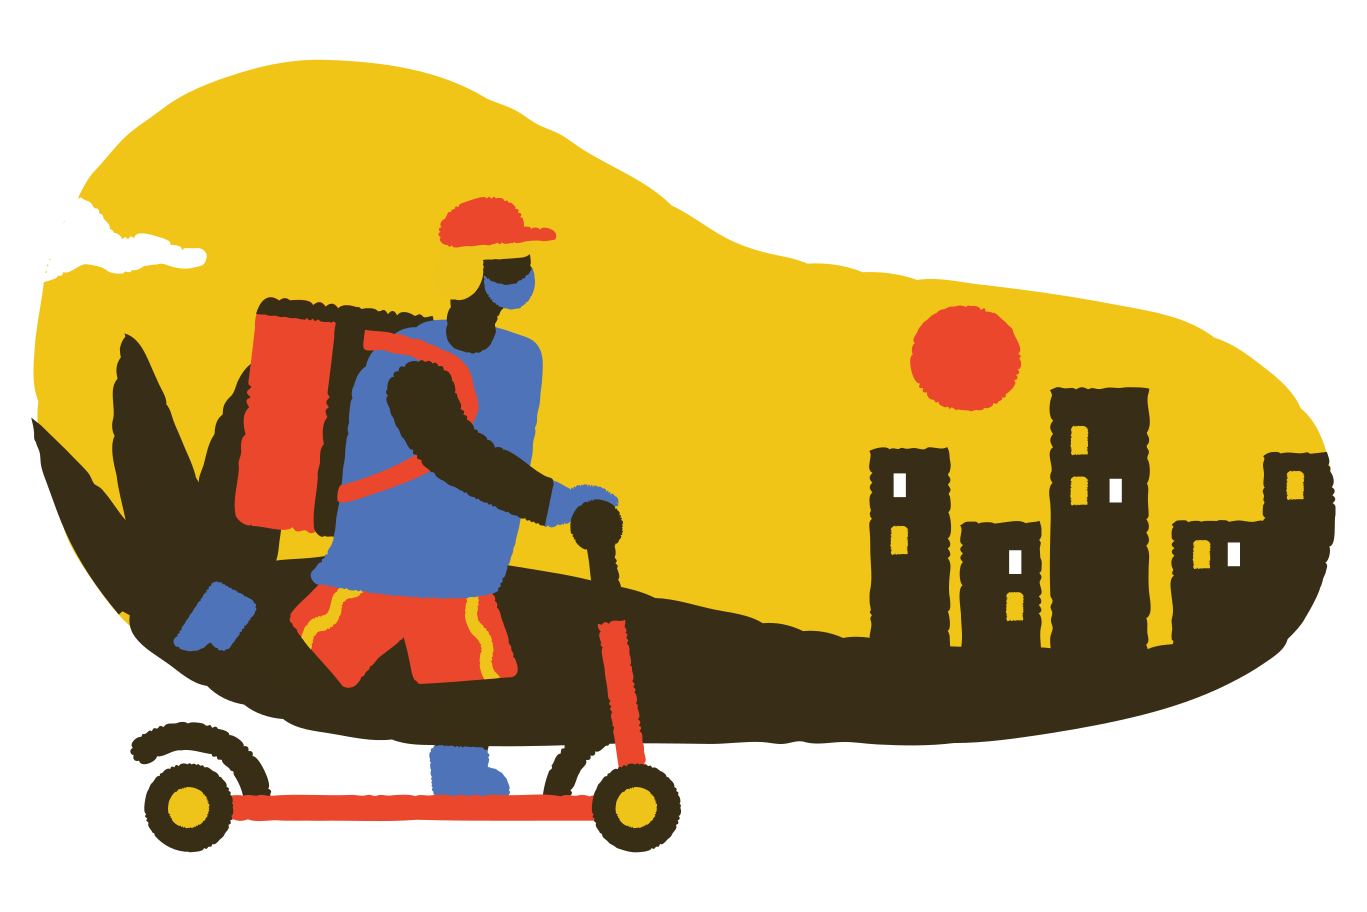 Delivery guy in a hurry Clipart illustration in PNG, SVG